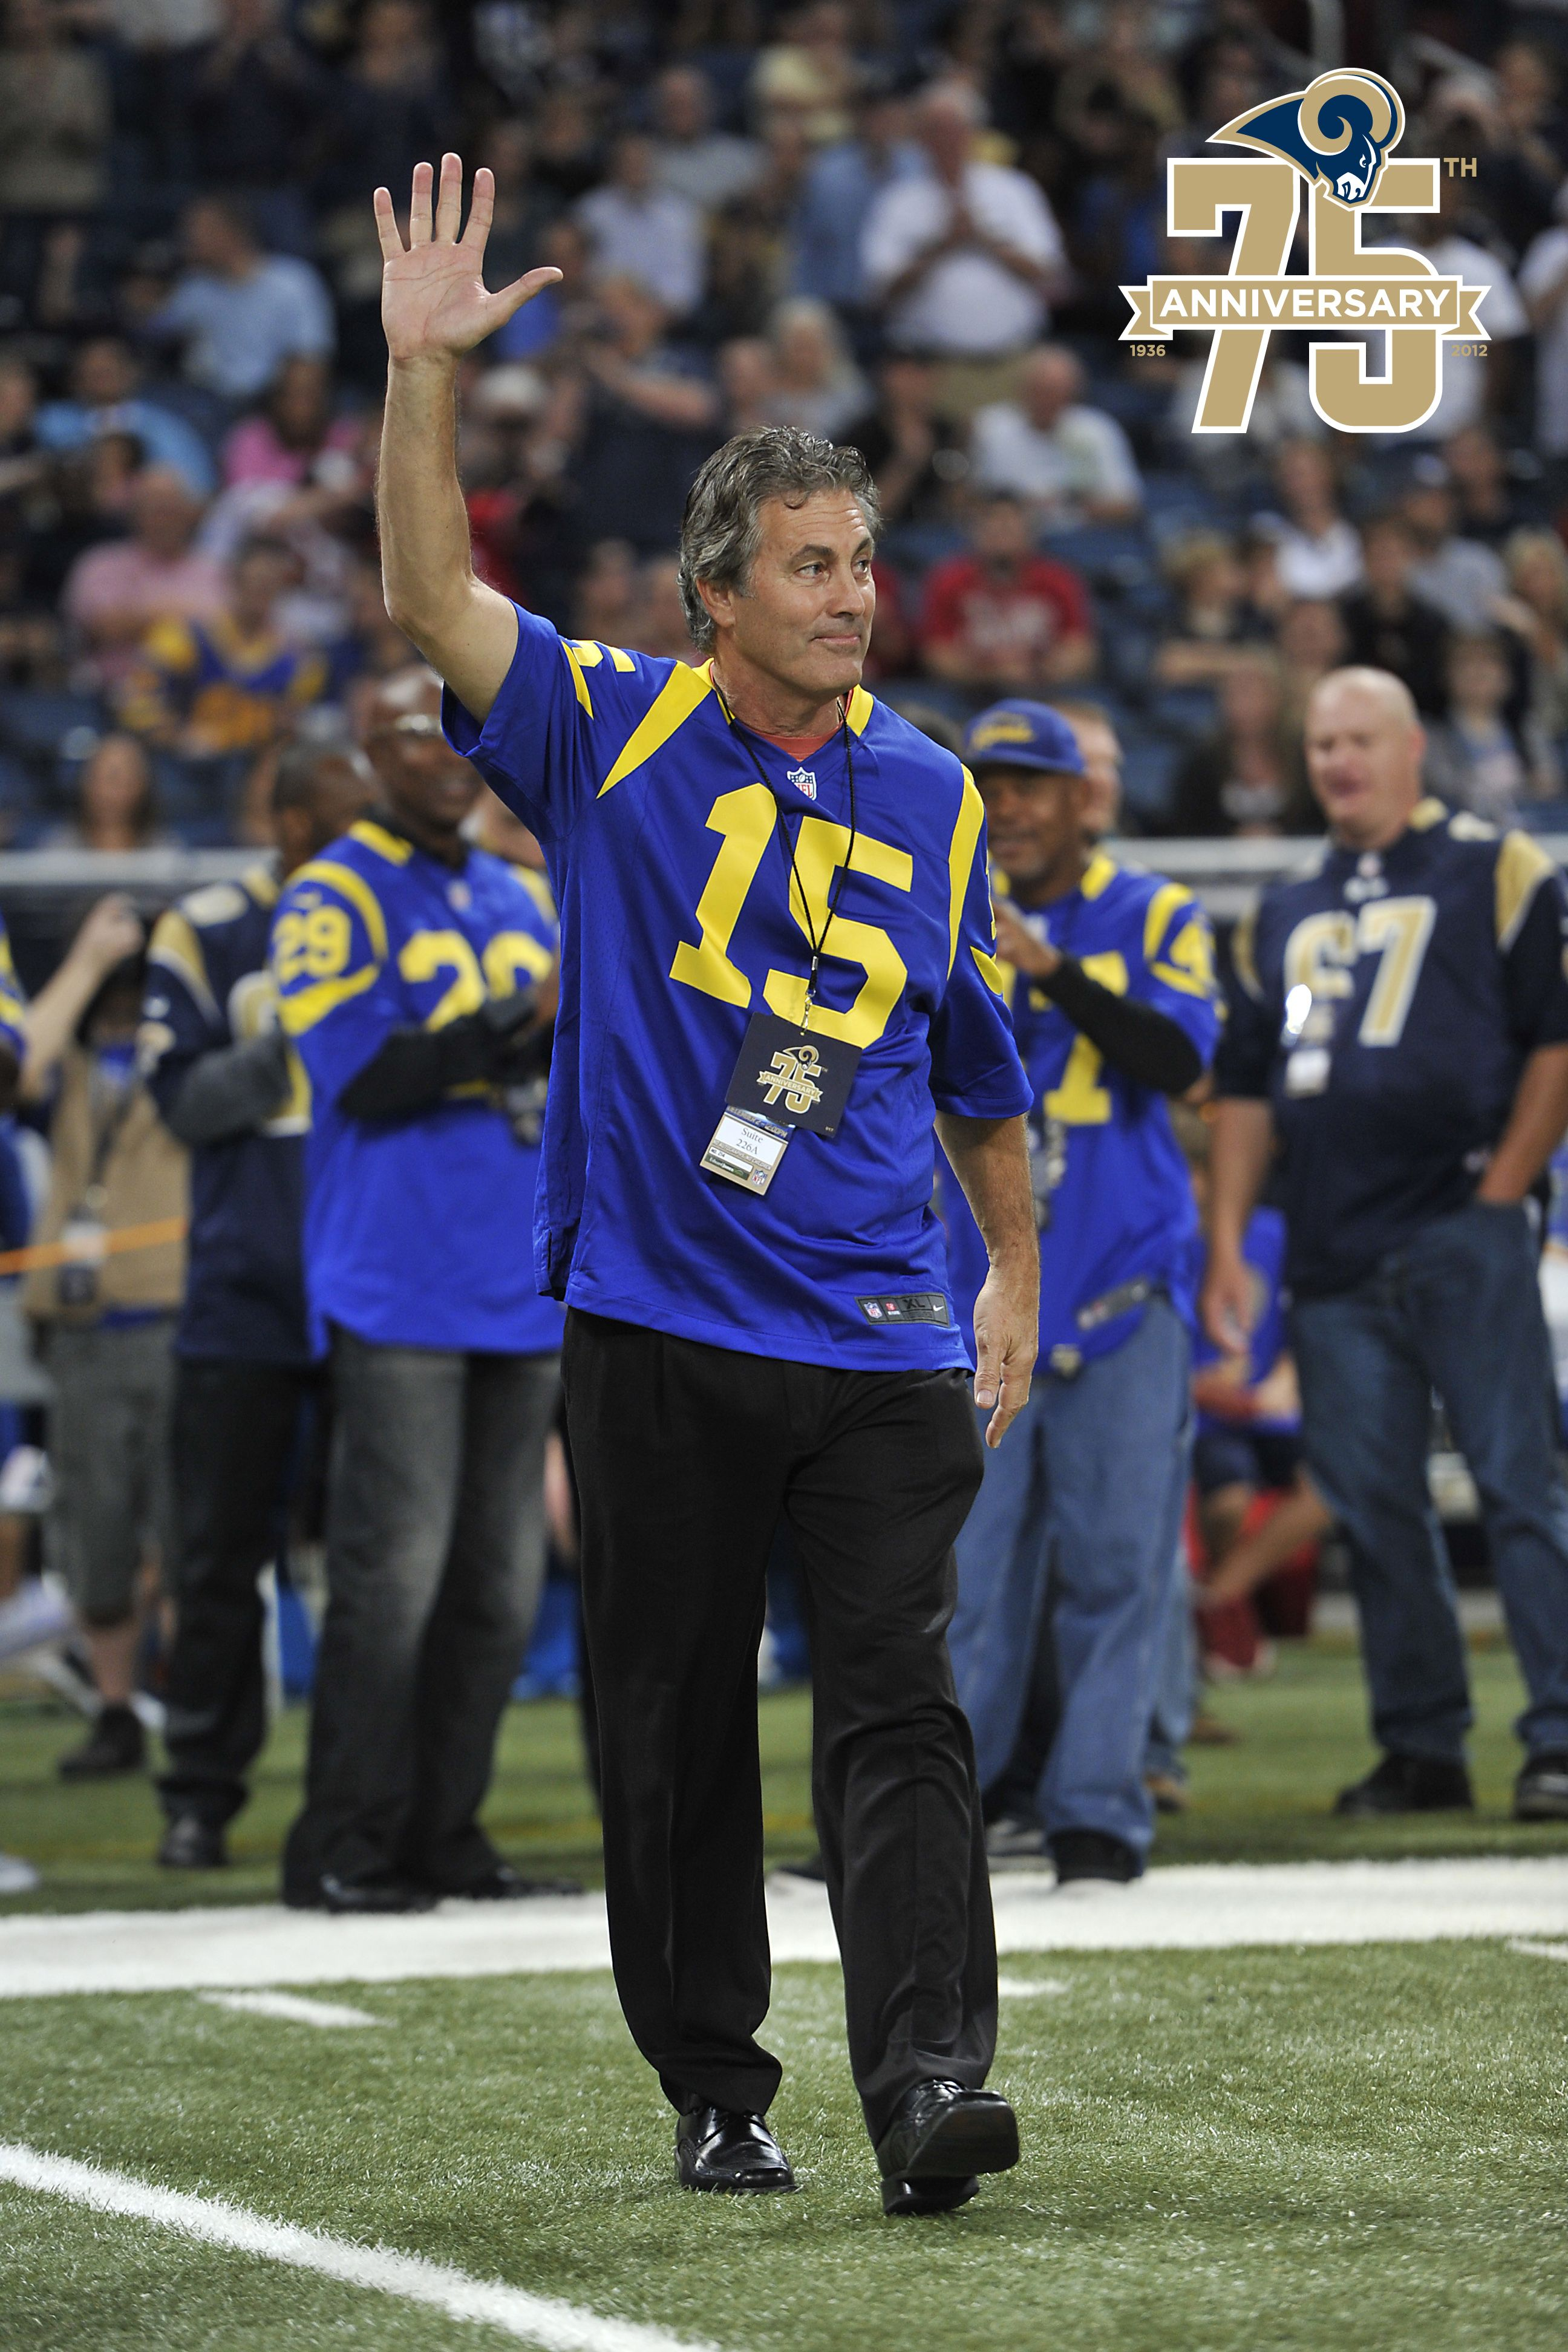 Quarterback Vince Ferragamo Played 7 Seasons For The Los Angeles Rams Ferragamo And Other Rams Legends Wer Los Angeles Rams Football Couples American Football